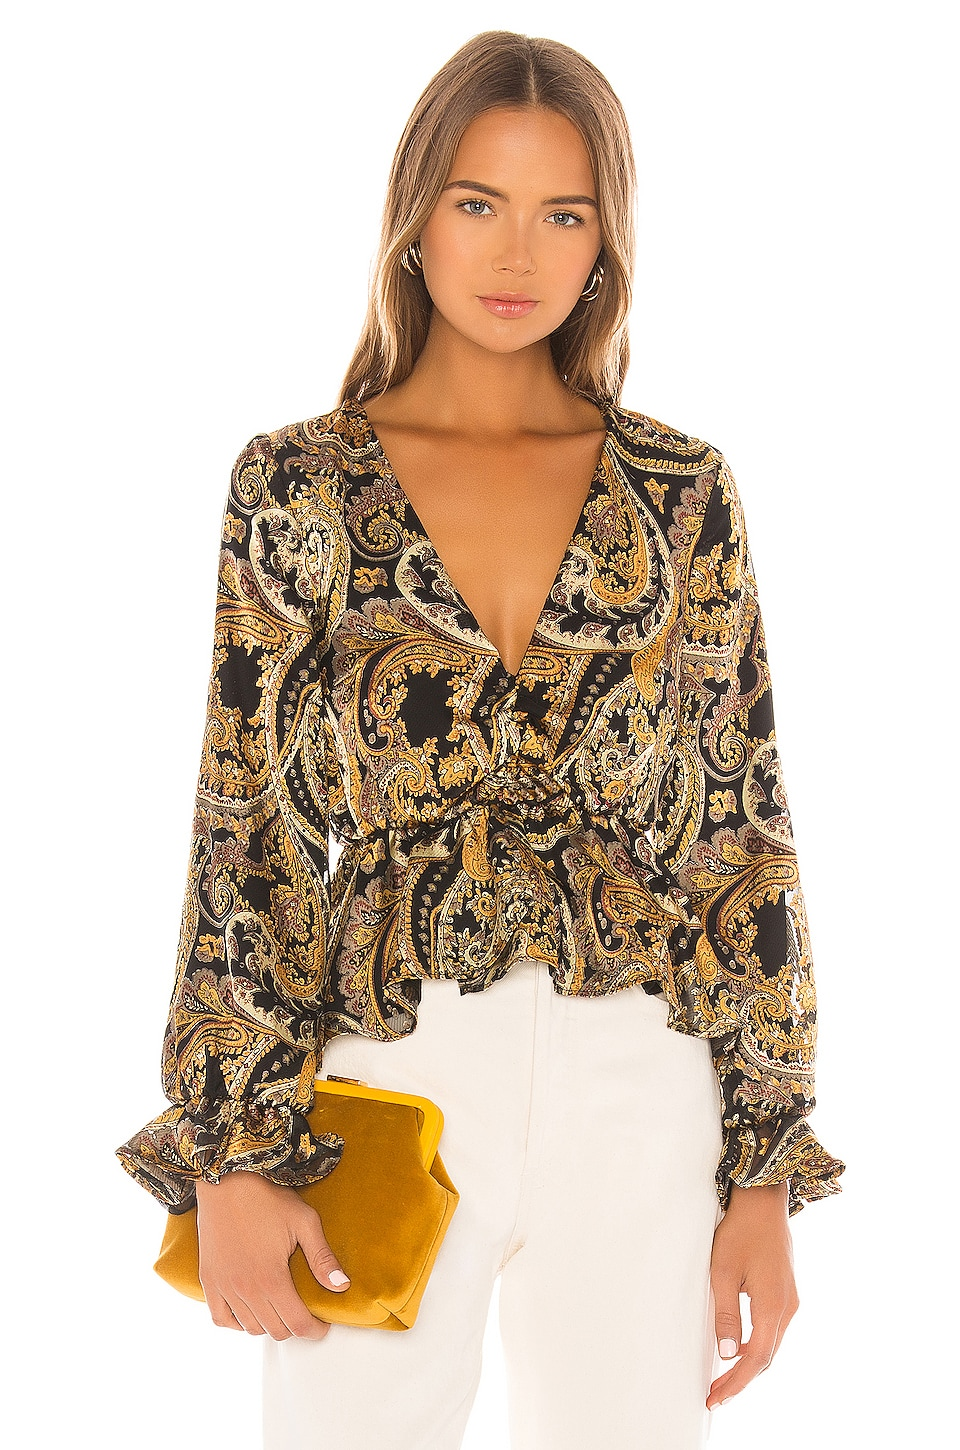 House of Harlow 1960 X REVOLVE Maisha Top in Black & Gold Paisley